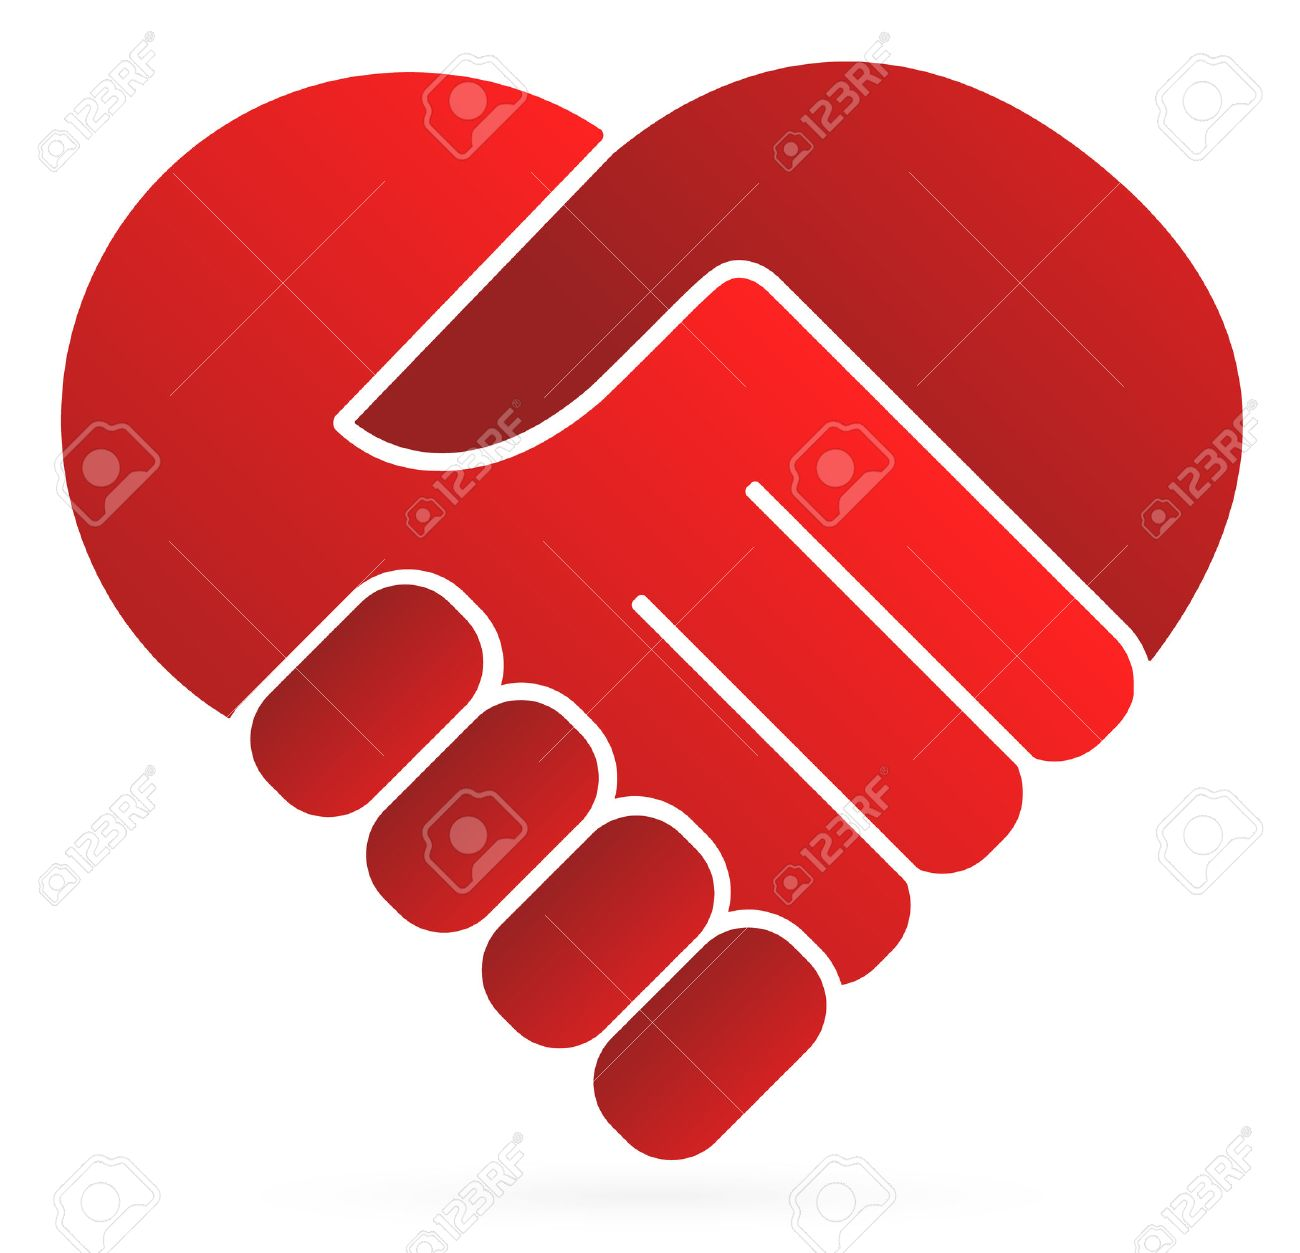 Kindness stock photos royalty free business images handshake symbol forming a heart buycottarizona